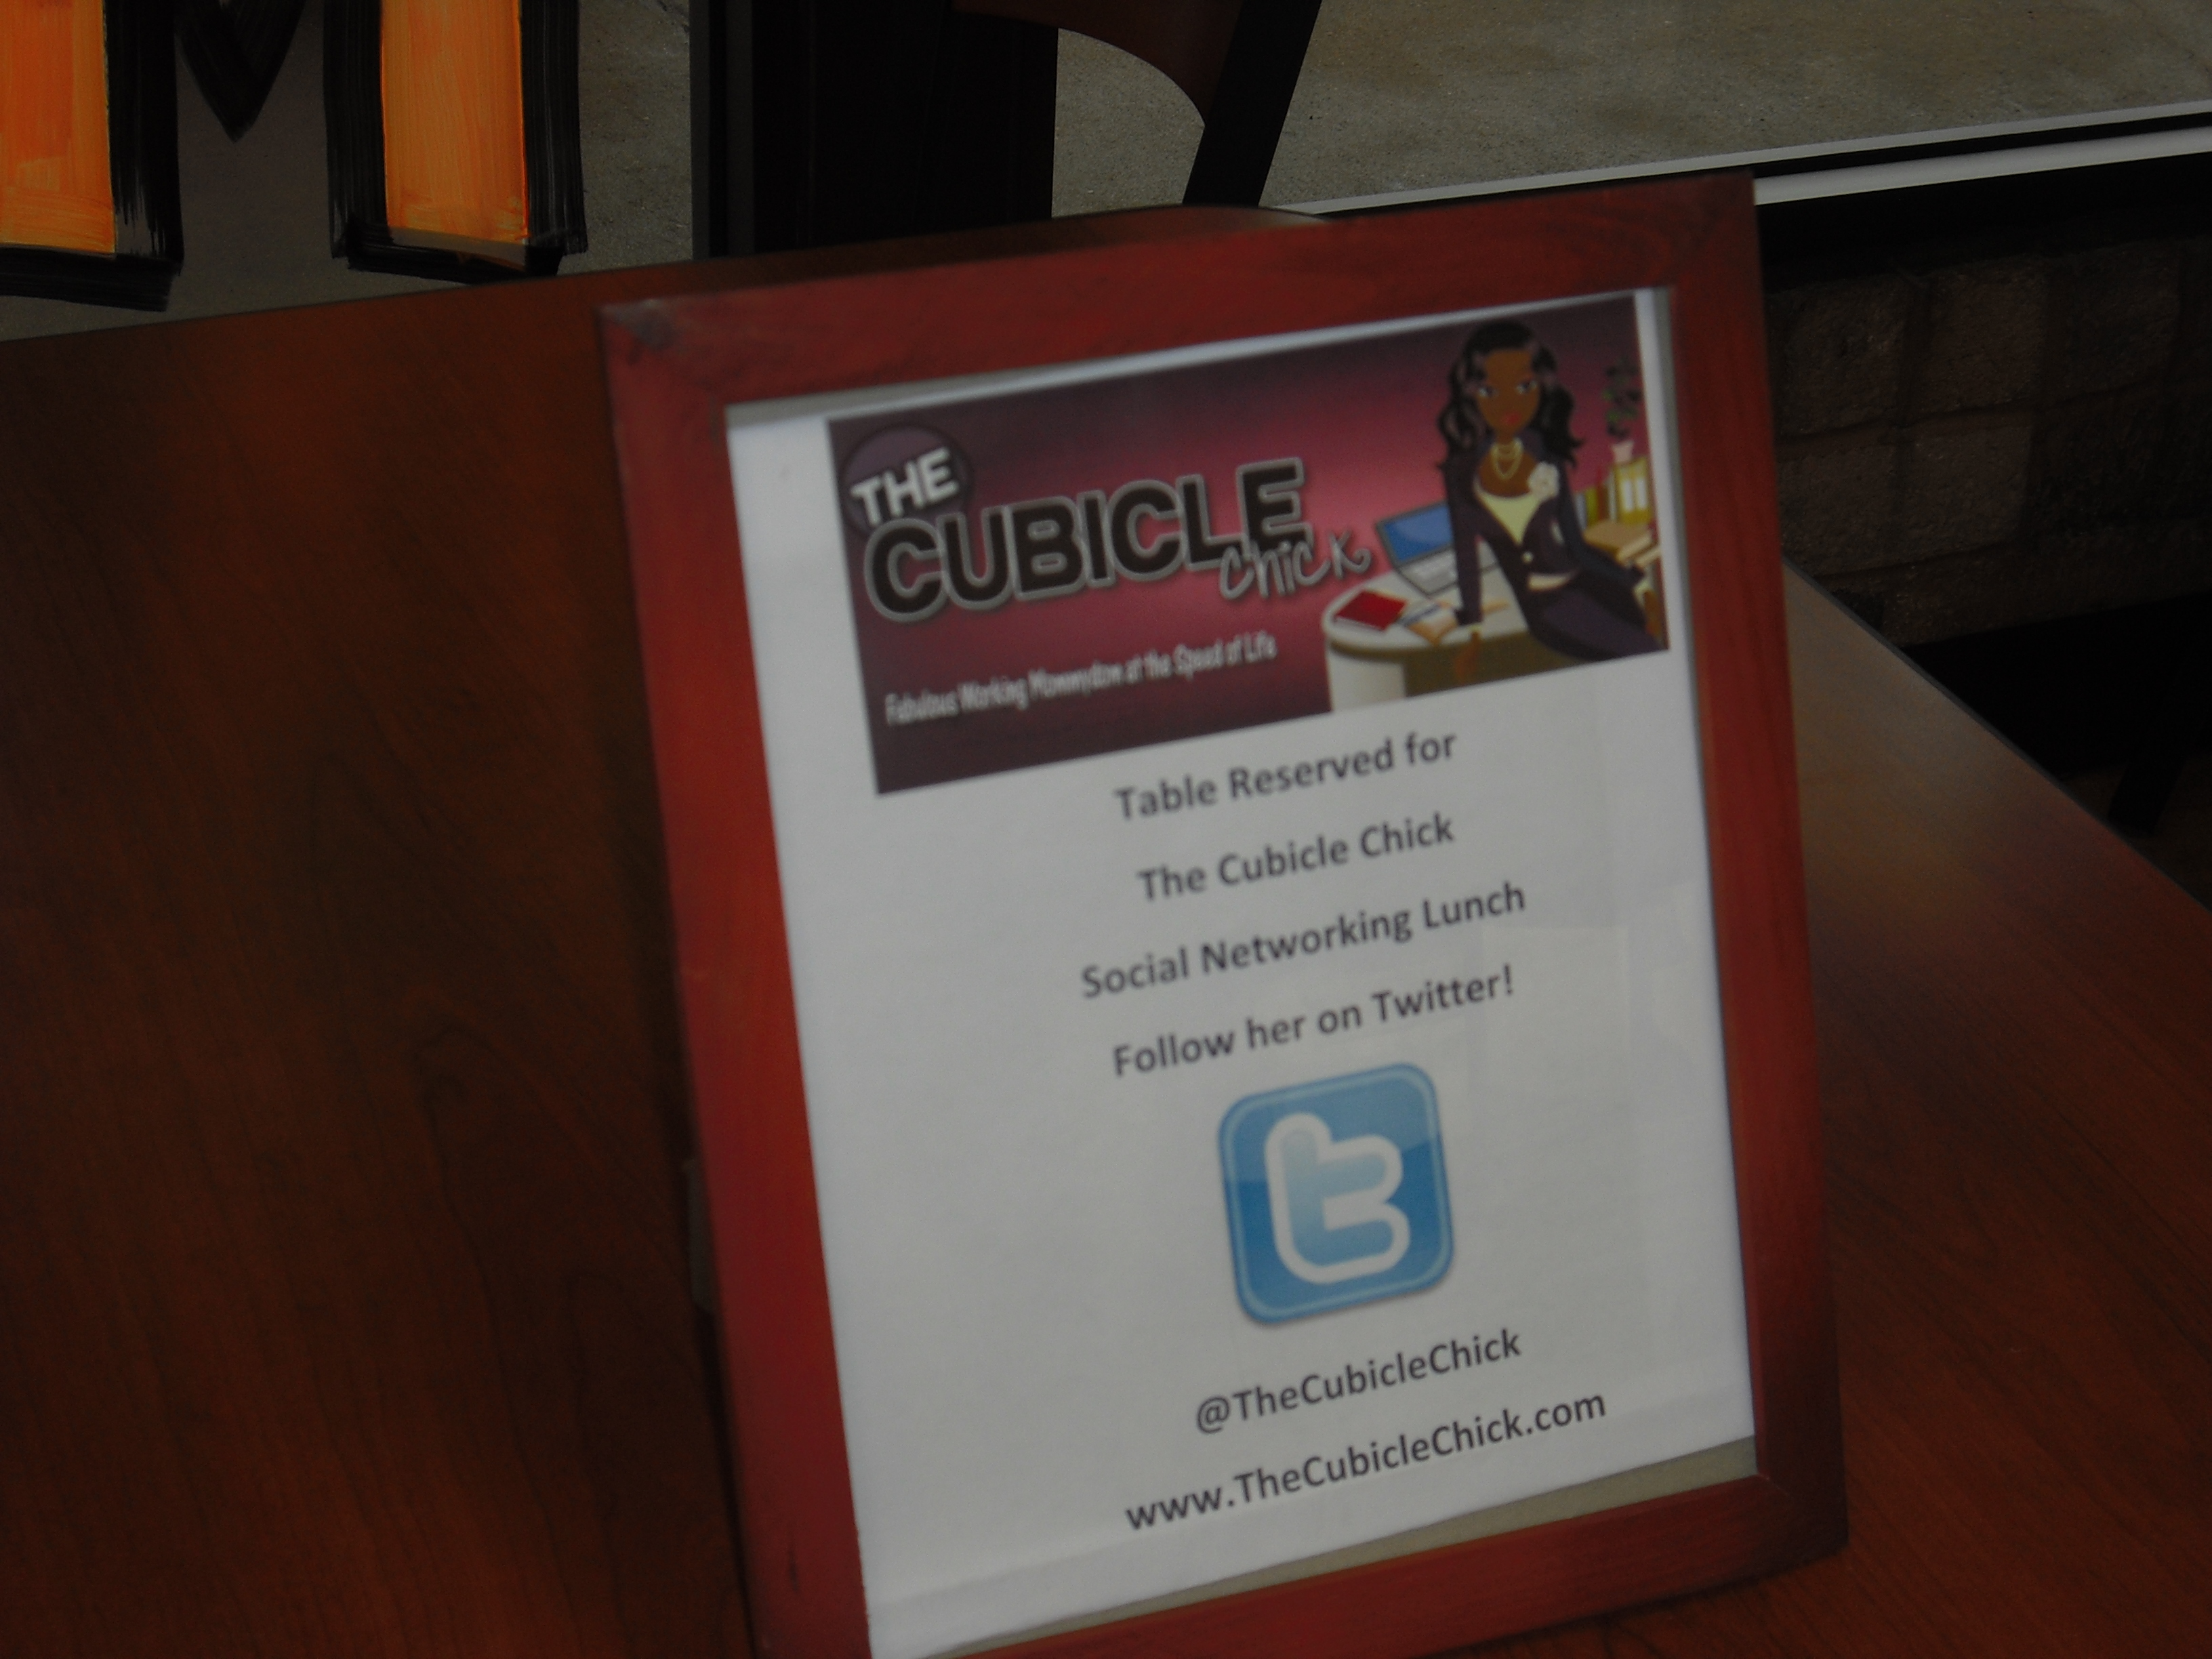 The Cubicle Chick Social Networking Lunch Was A Success!